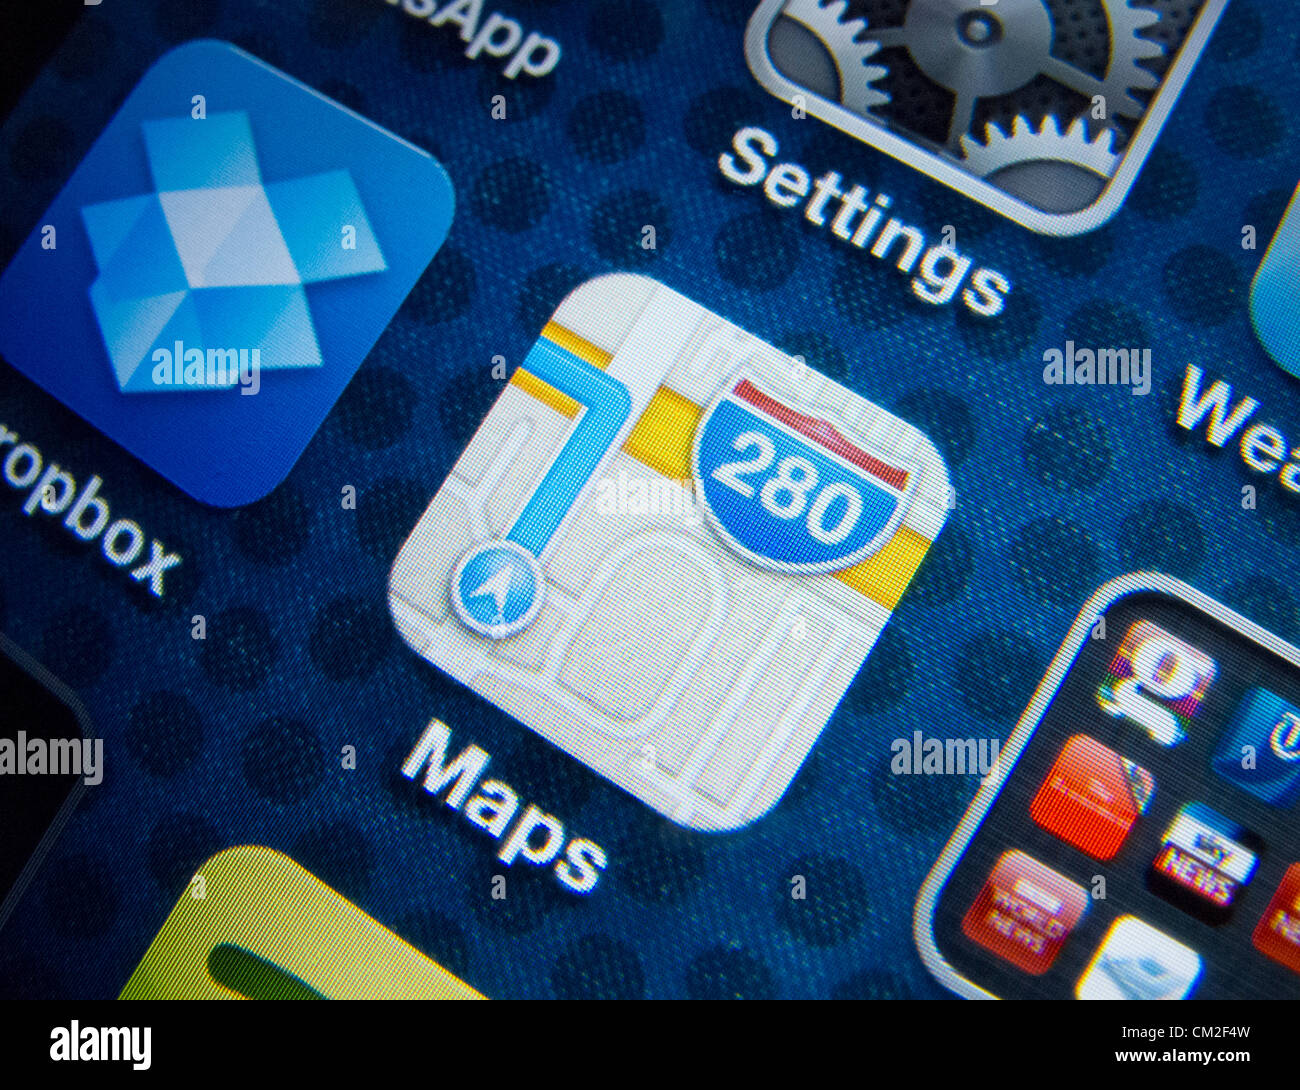 Detail of new Maps app on iPhone screen. Apple's new Maps application has been criticised by users for providing Stock Photo